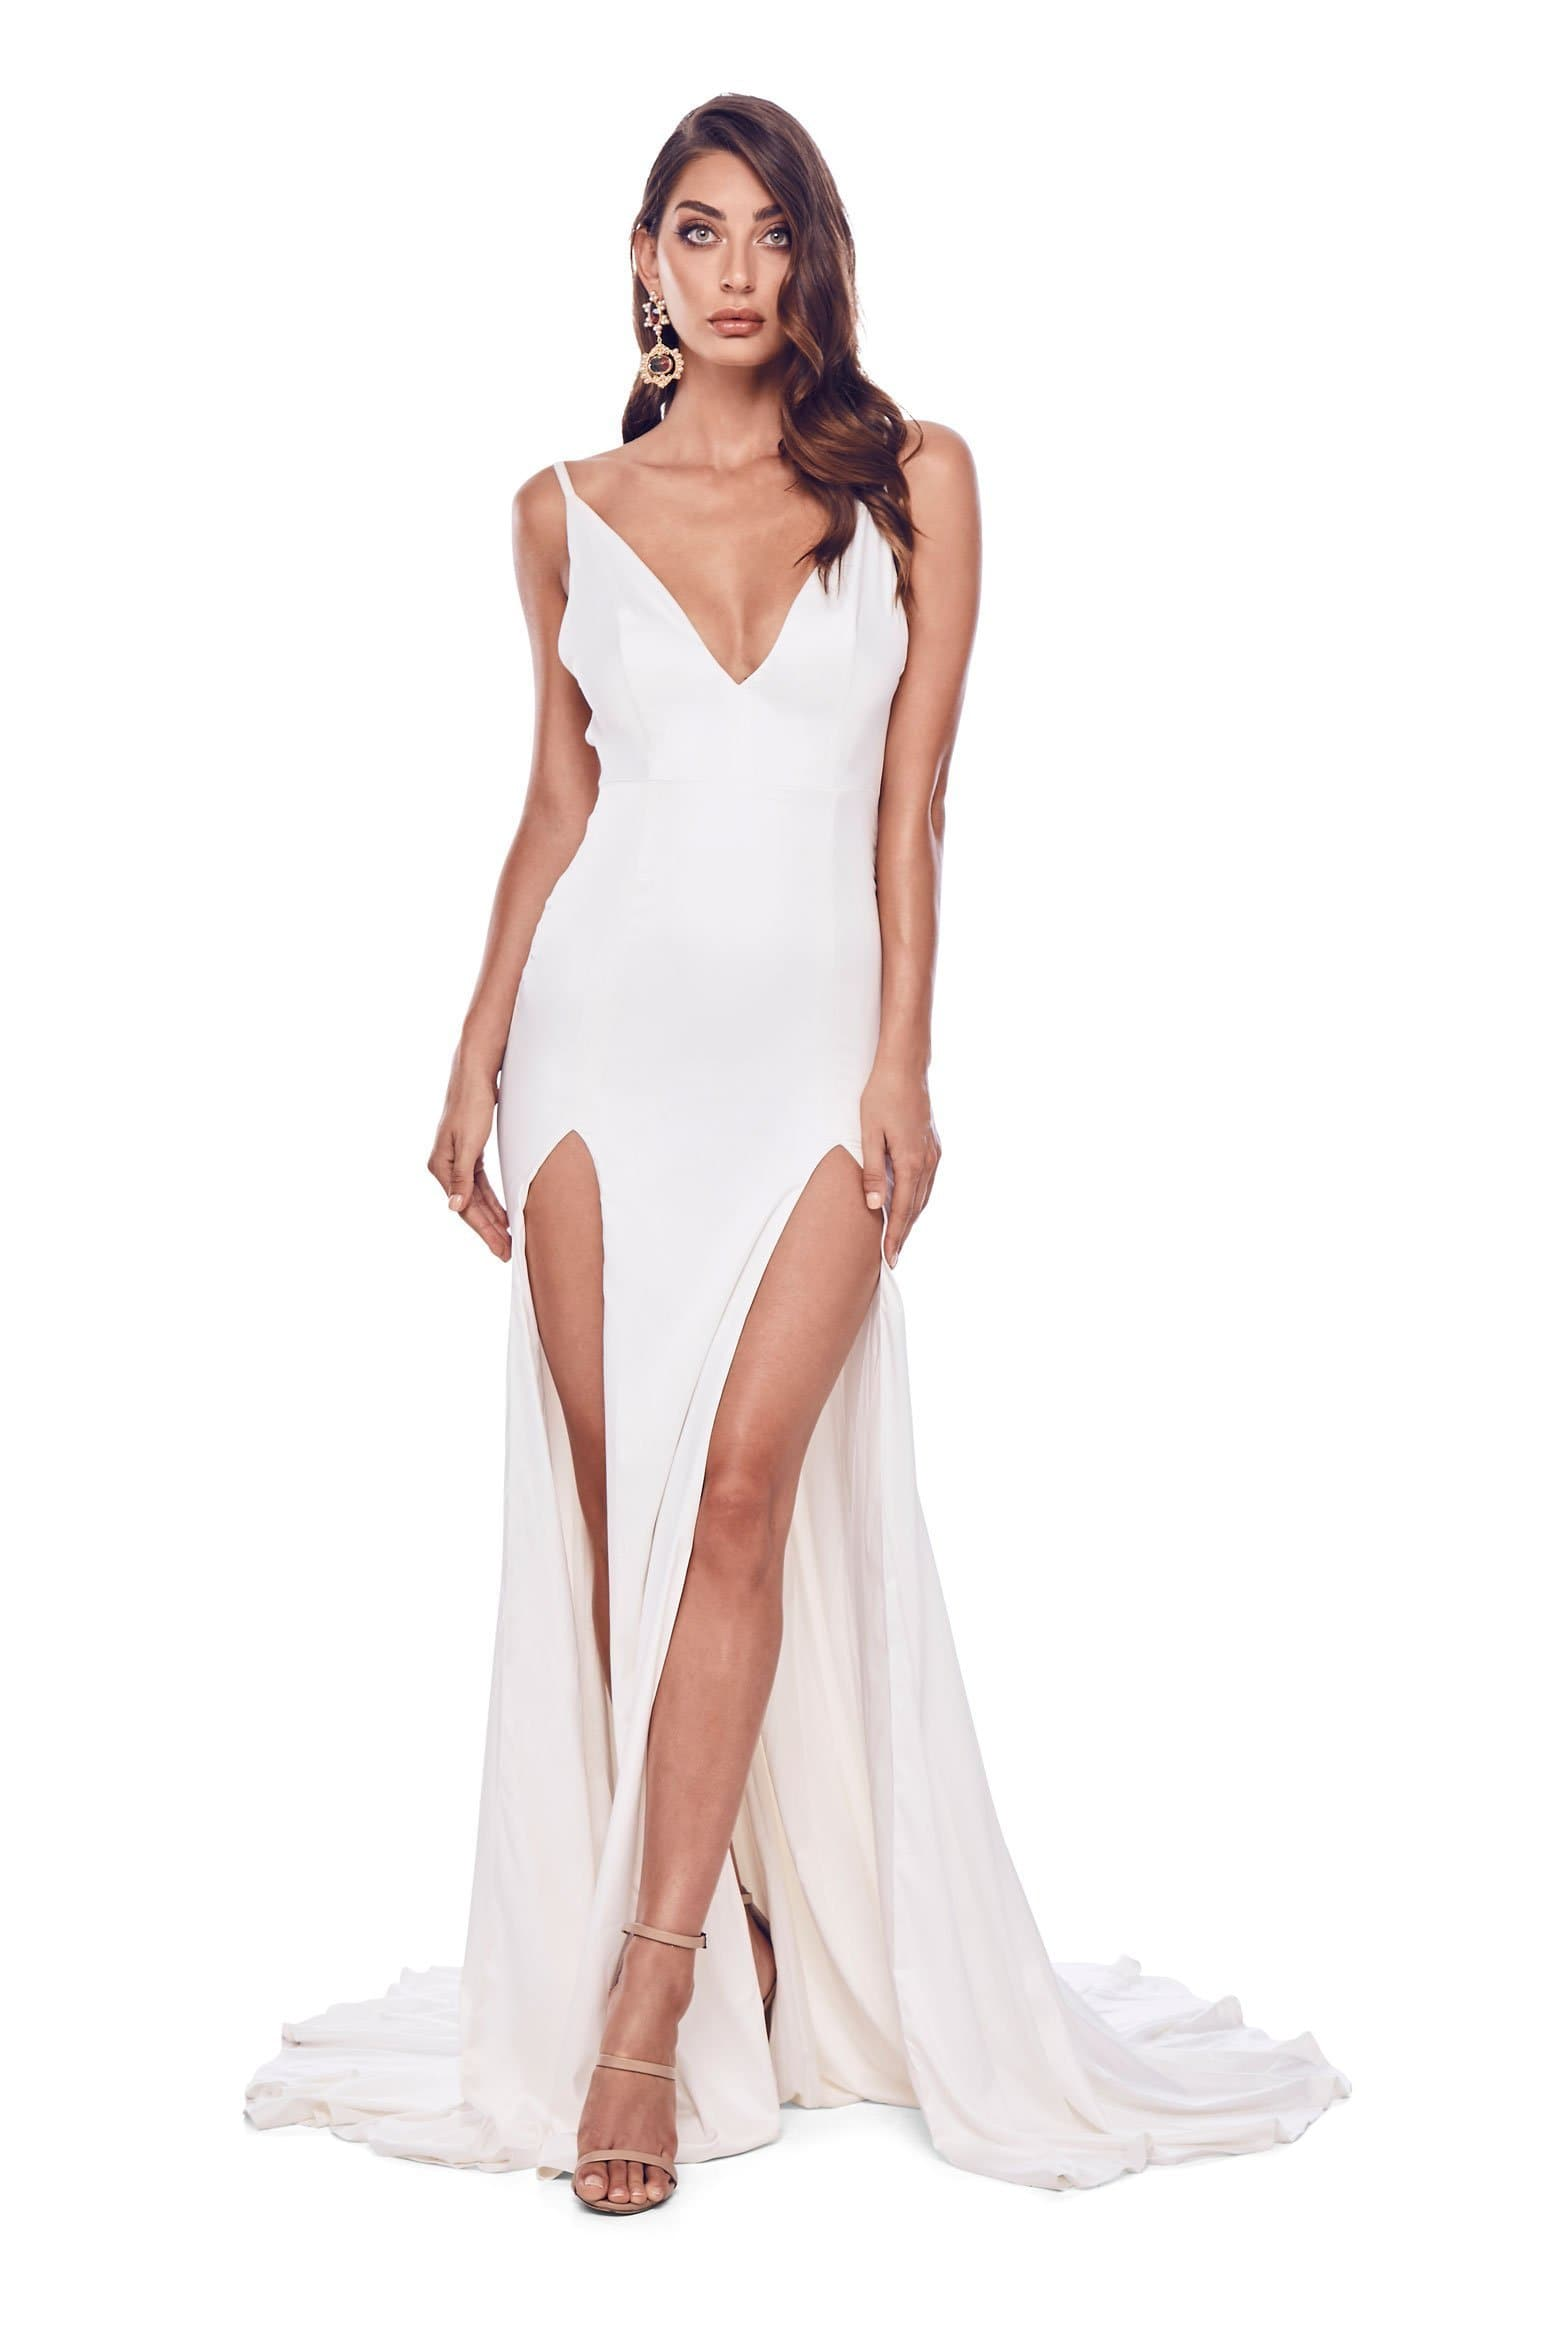 Izabelle - White Satin Backless Gown with V-Neckline & Side Slits